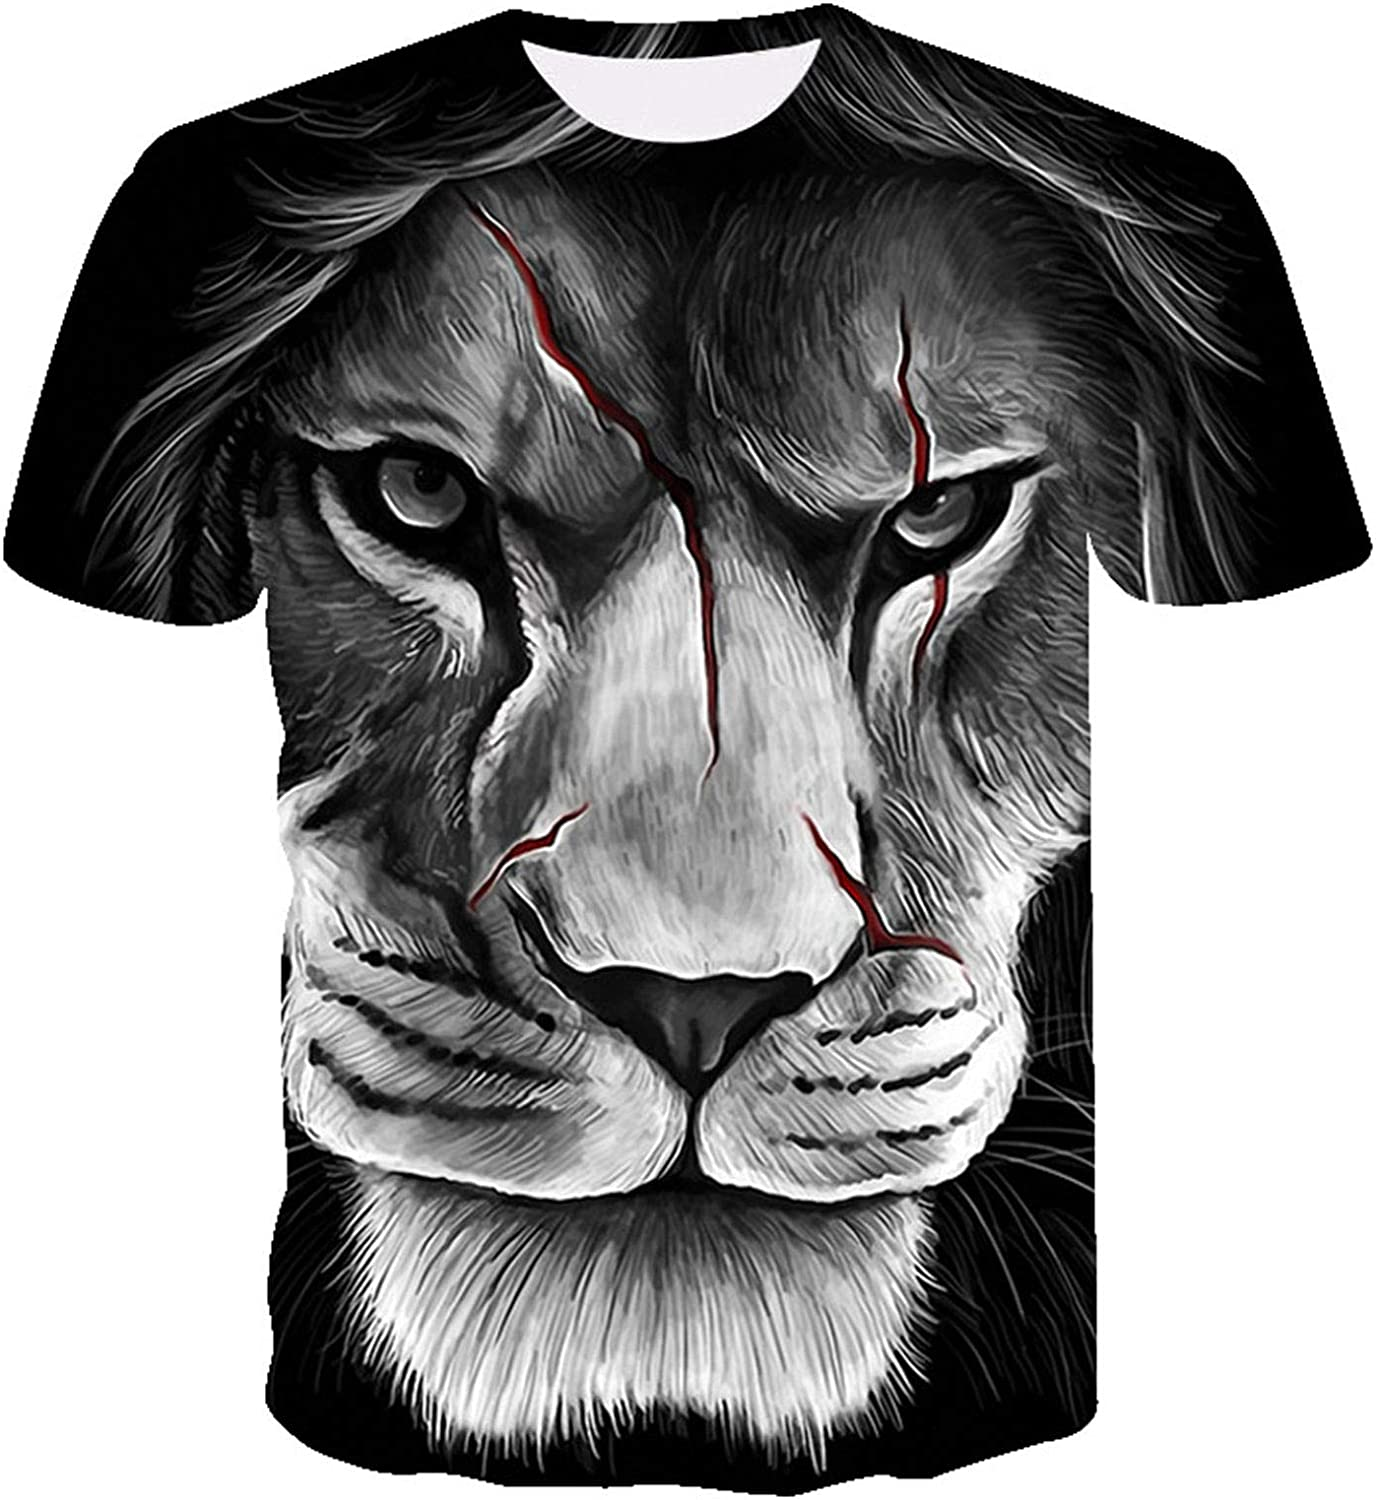 DZQUY Mens Summer 3D Digital Printed Graphic Tee Shirts Short Sleeve Casual Hipster Hip Hop Workout Tops Blouse